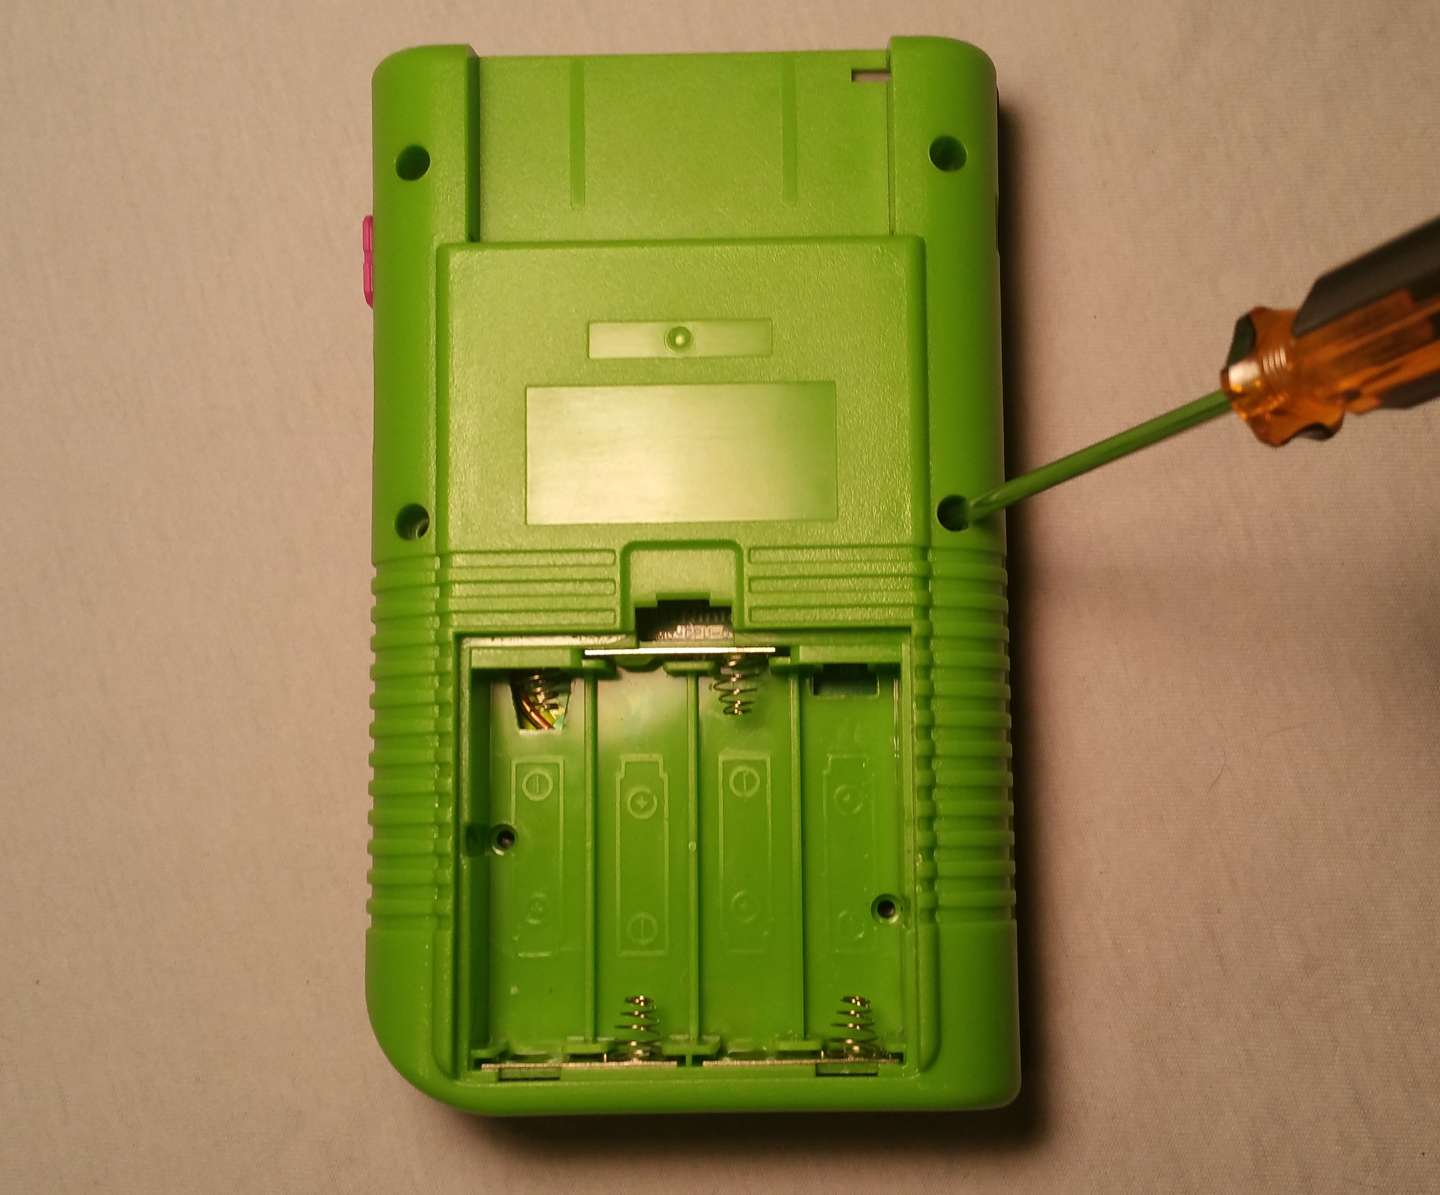 Seal the Game Boy together